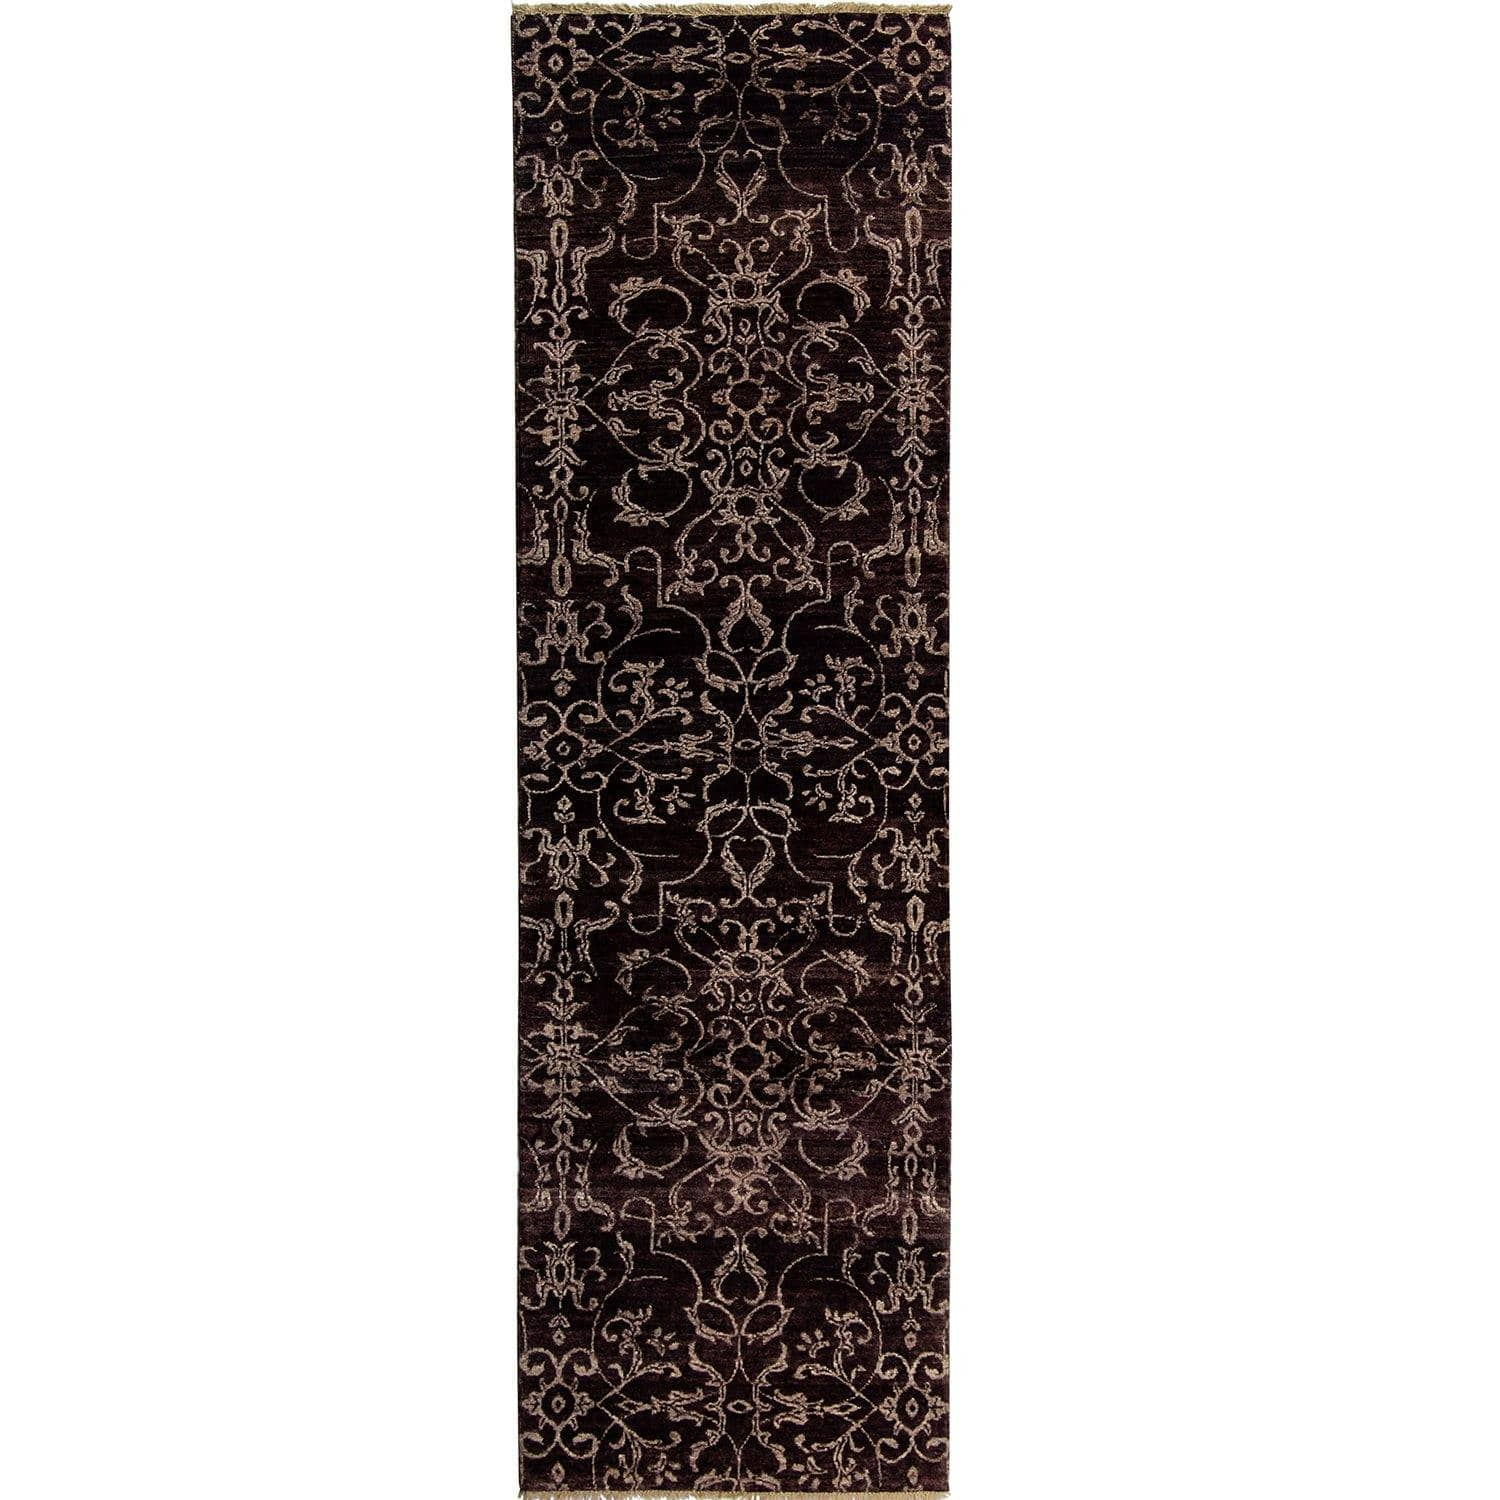 Fine Contempoaray Hand-knotted NZ Wool Runner 74cm x 256cm Persian-Rug | House-of-Haghi | NewMarket | Auckland | NZ | Handmade Persian Rugs | Hand Knotted Persian Rugs